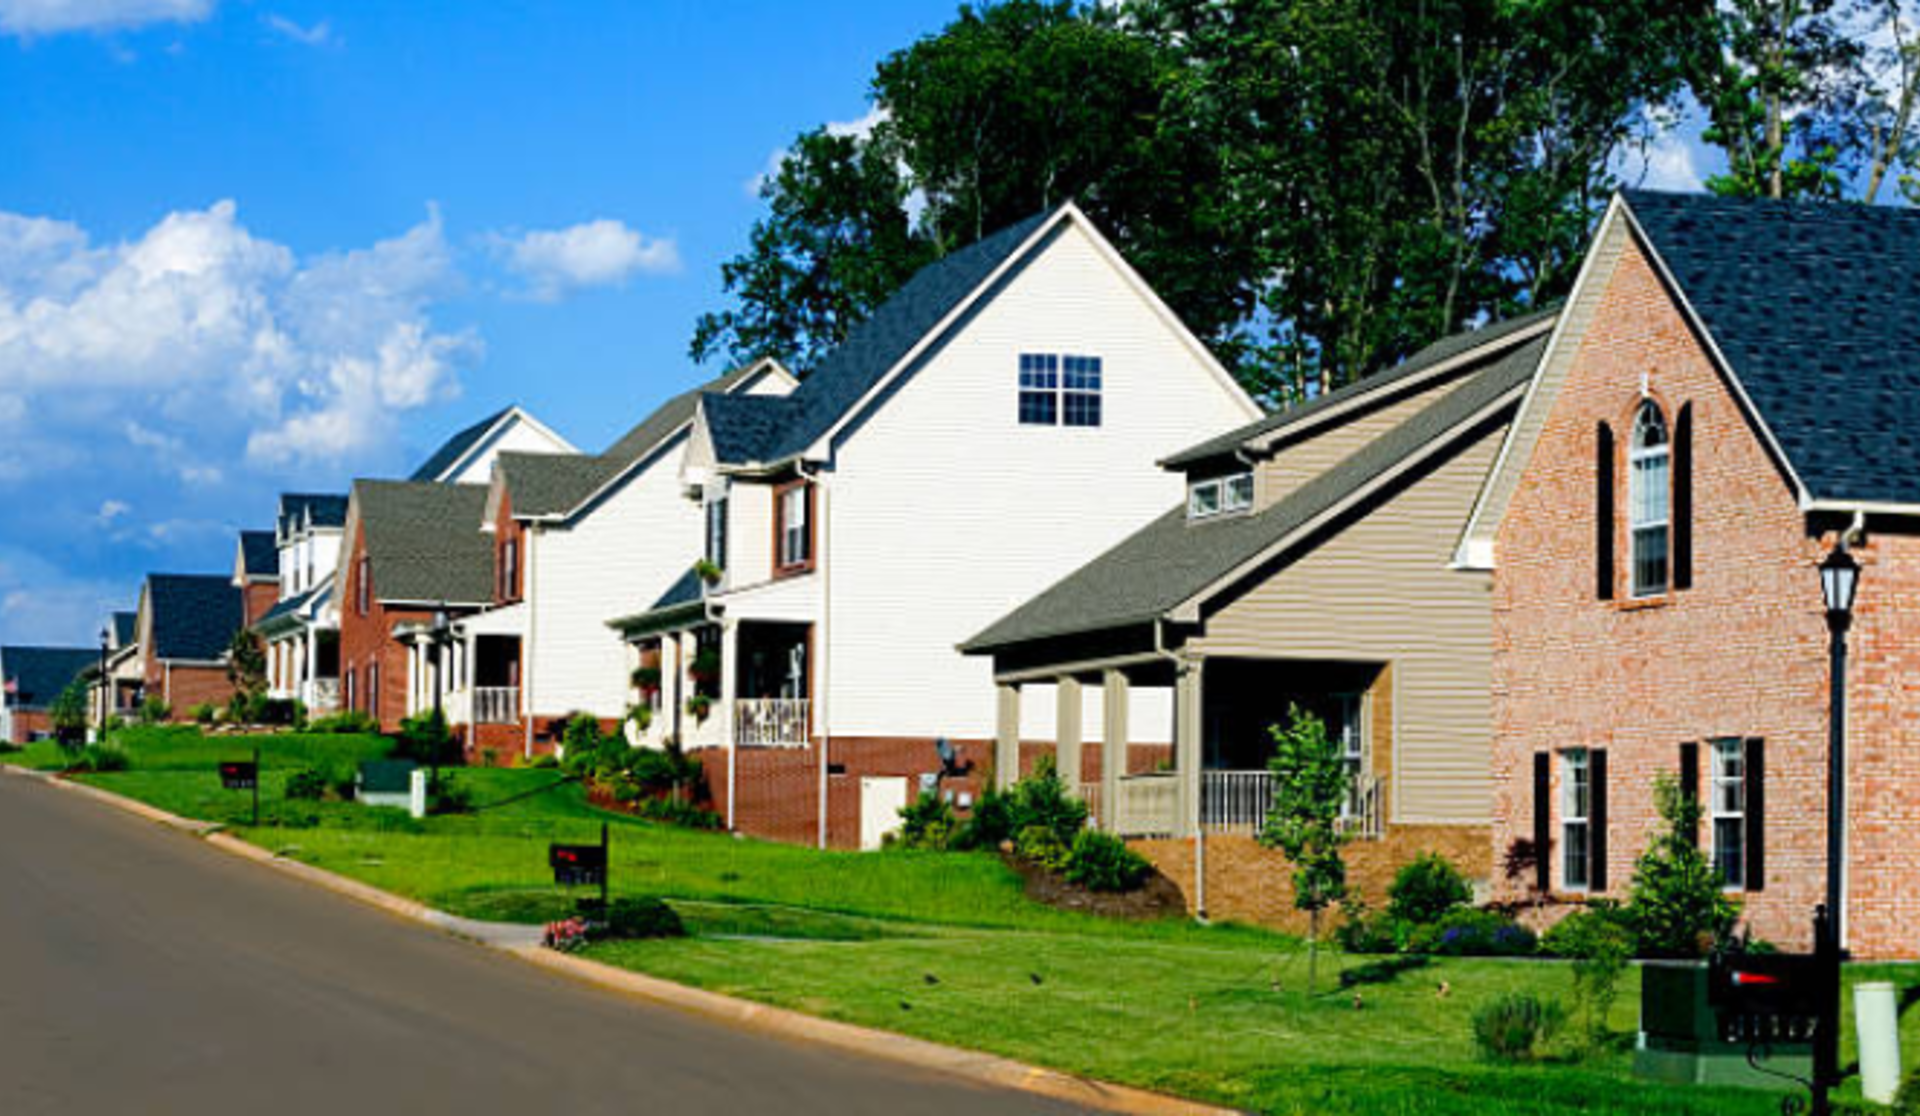 How Do You Tell If A Neighborhood Is The Right One To Settle In?